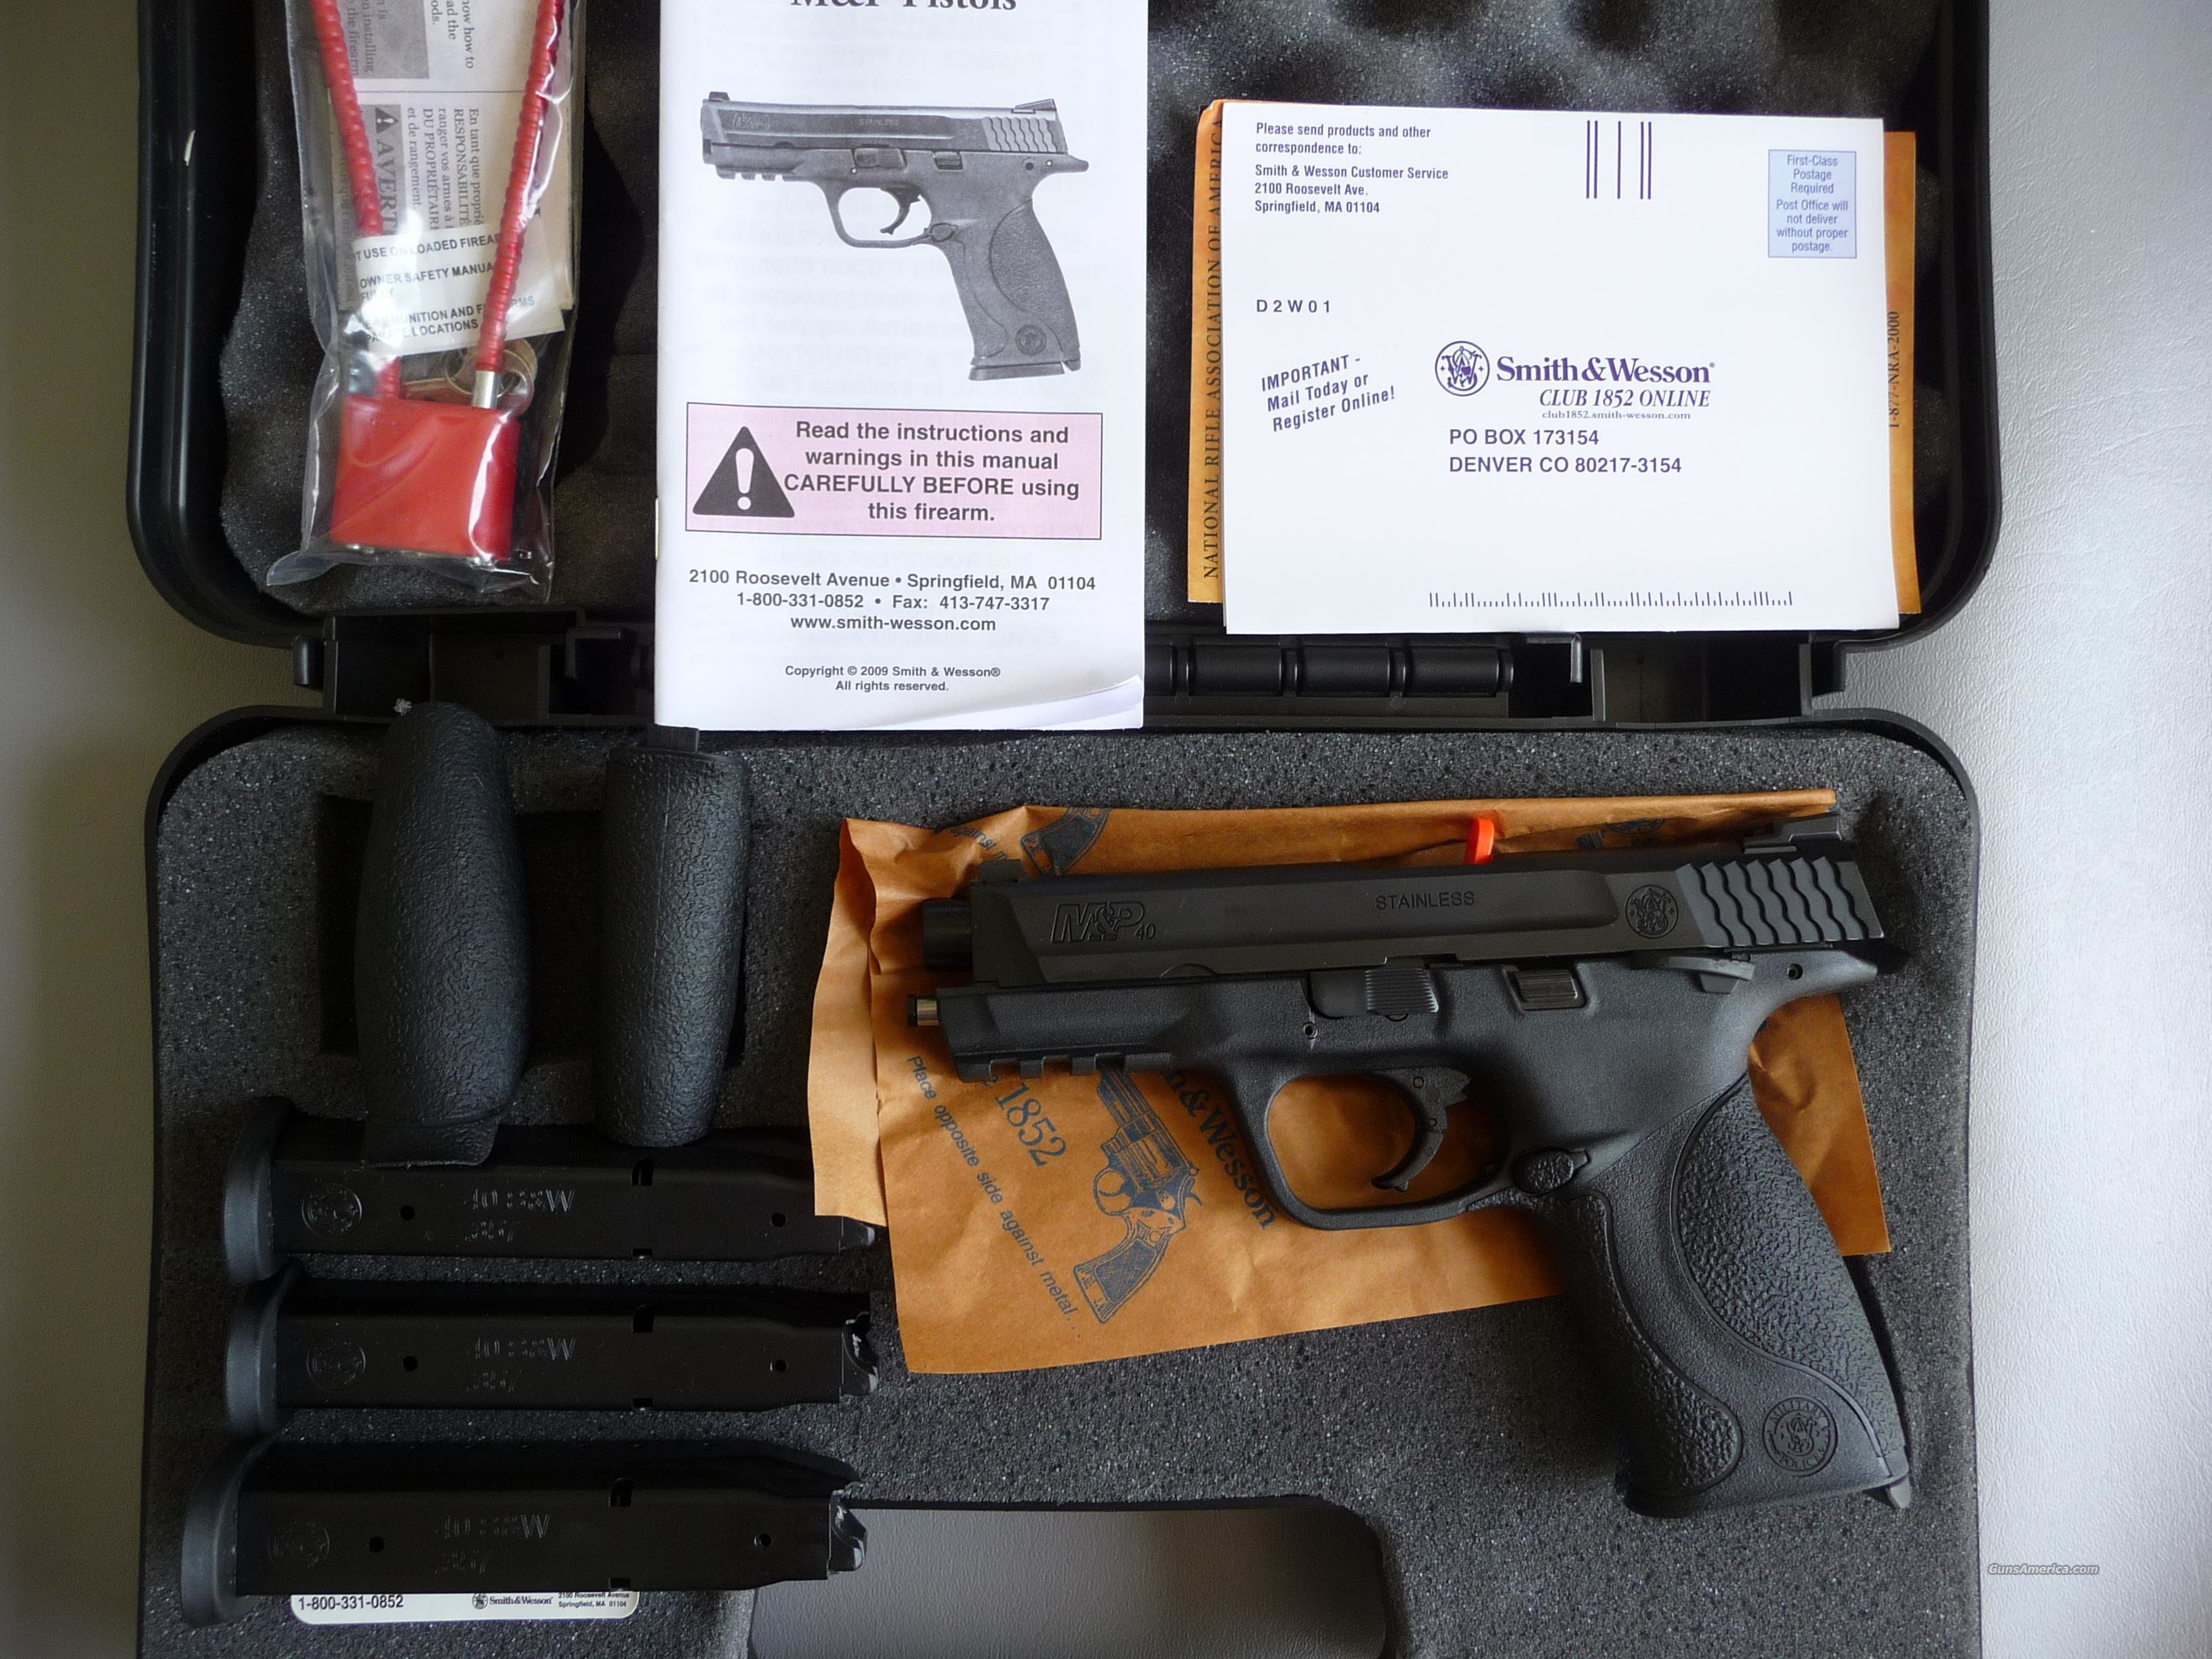 S&W M&P-40 with 3 Hi-Cap Mags, Unfired Police Trade-In  Guns > Pistols > Smith & Wesson Pistols - Autos > Polymer Frame